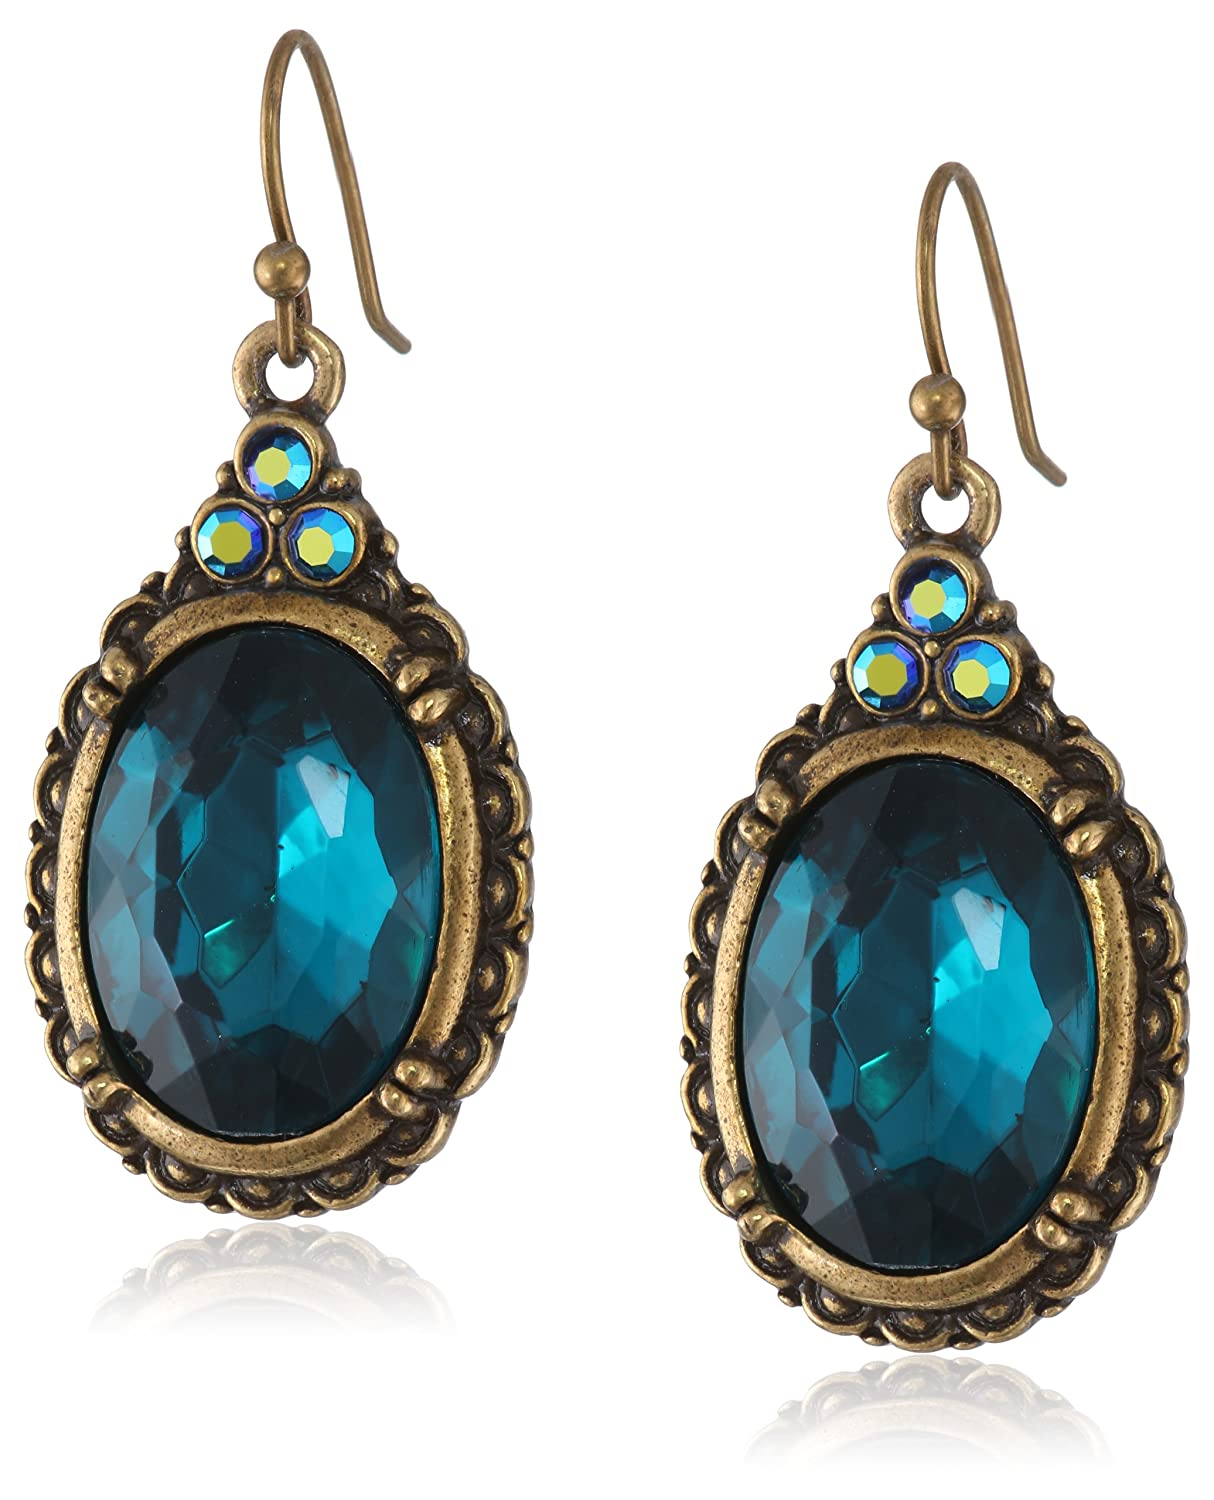 Vintage Style Jewelry, Retro Jewelry 1928 Jewelry Crystal Oval Drop Earrings $25.19 AT vintagedancer.com